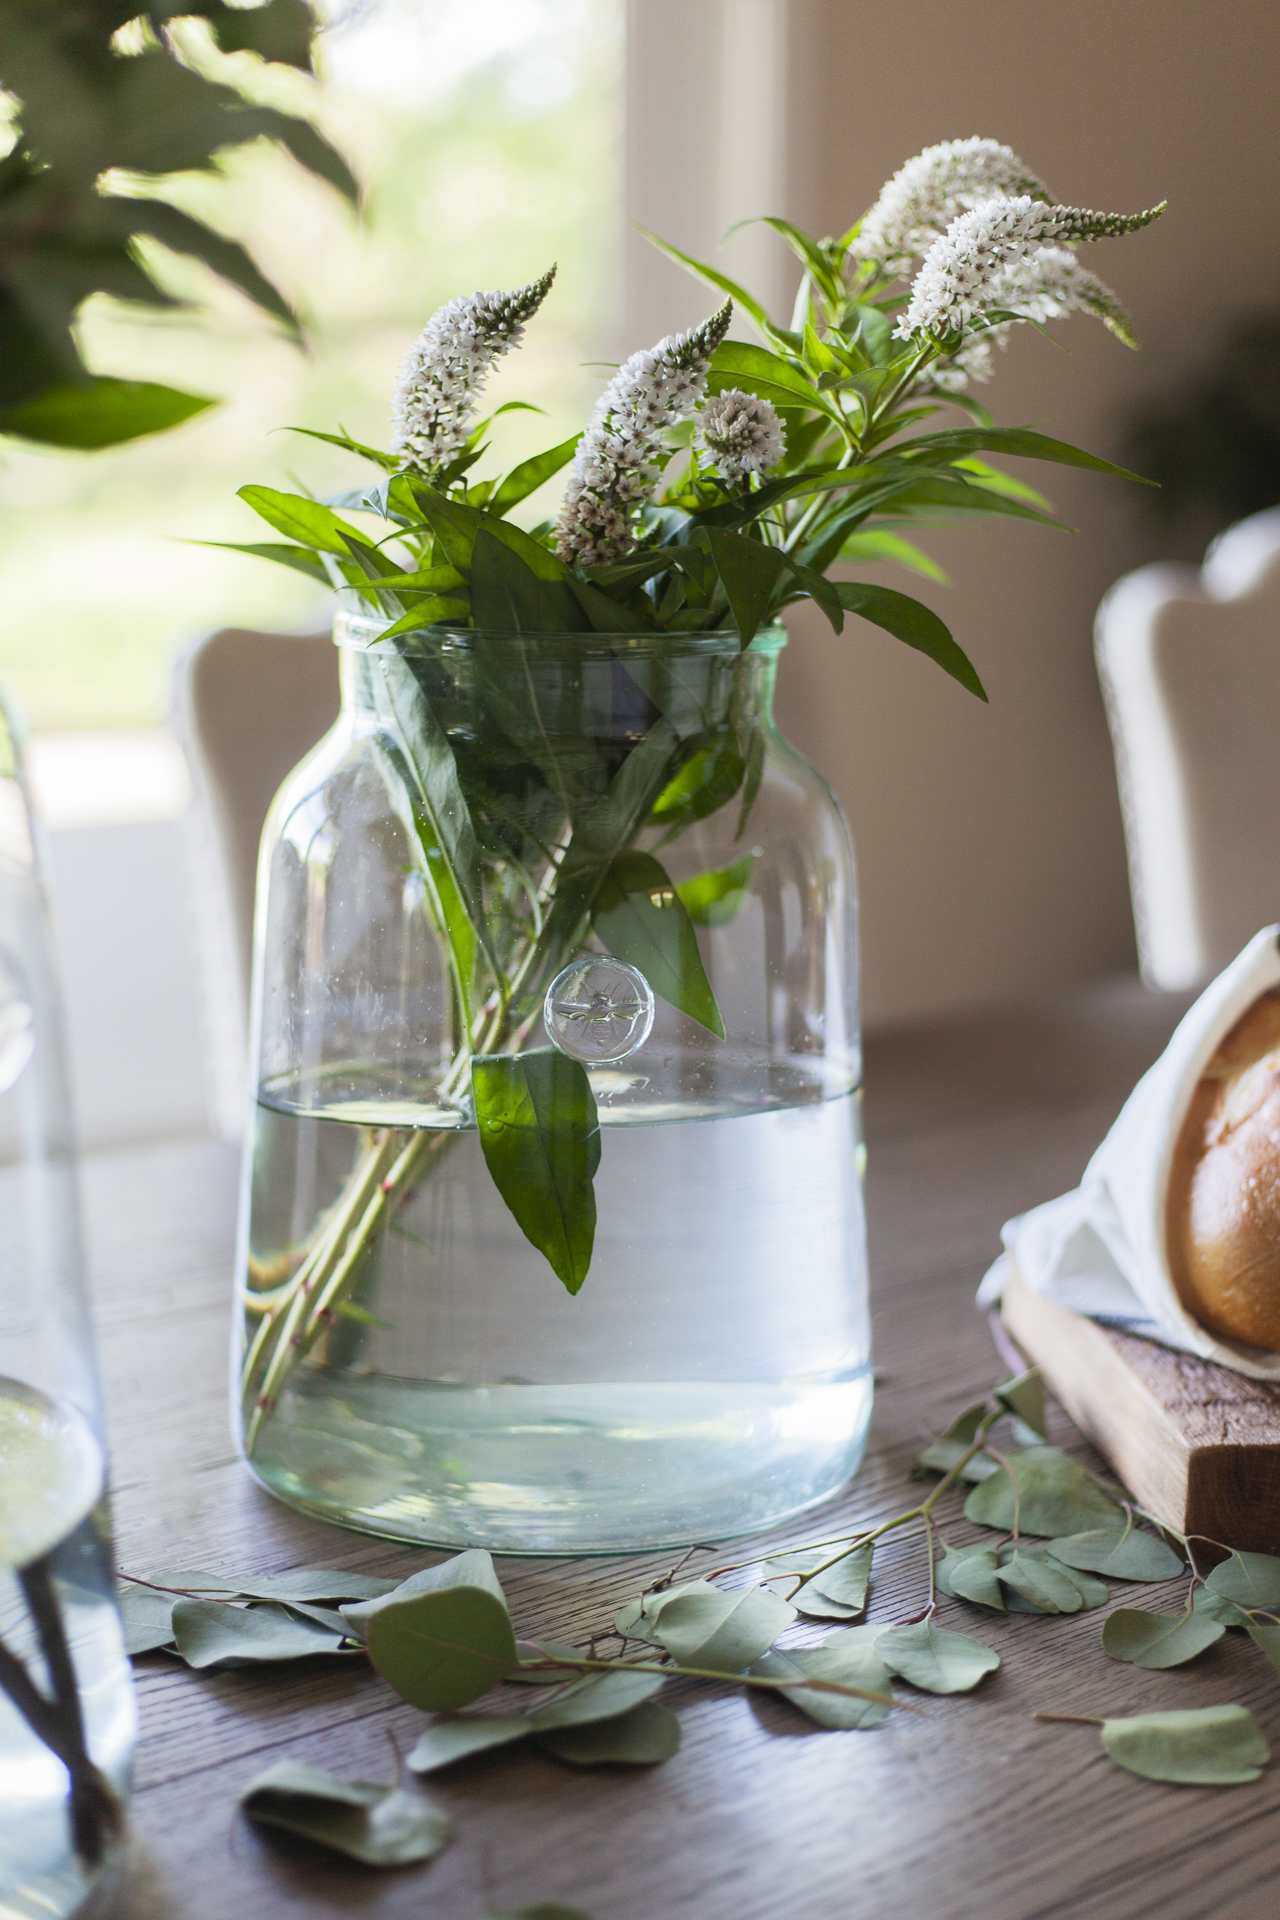 before-and-after-home-reveal-scout-and-nimble-lake-view-luxe-country-interior-design-dining-room-vase-wild-flowers-63.jpg